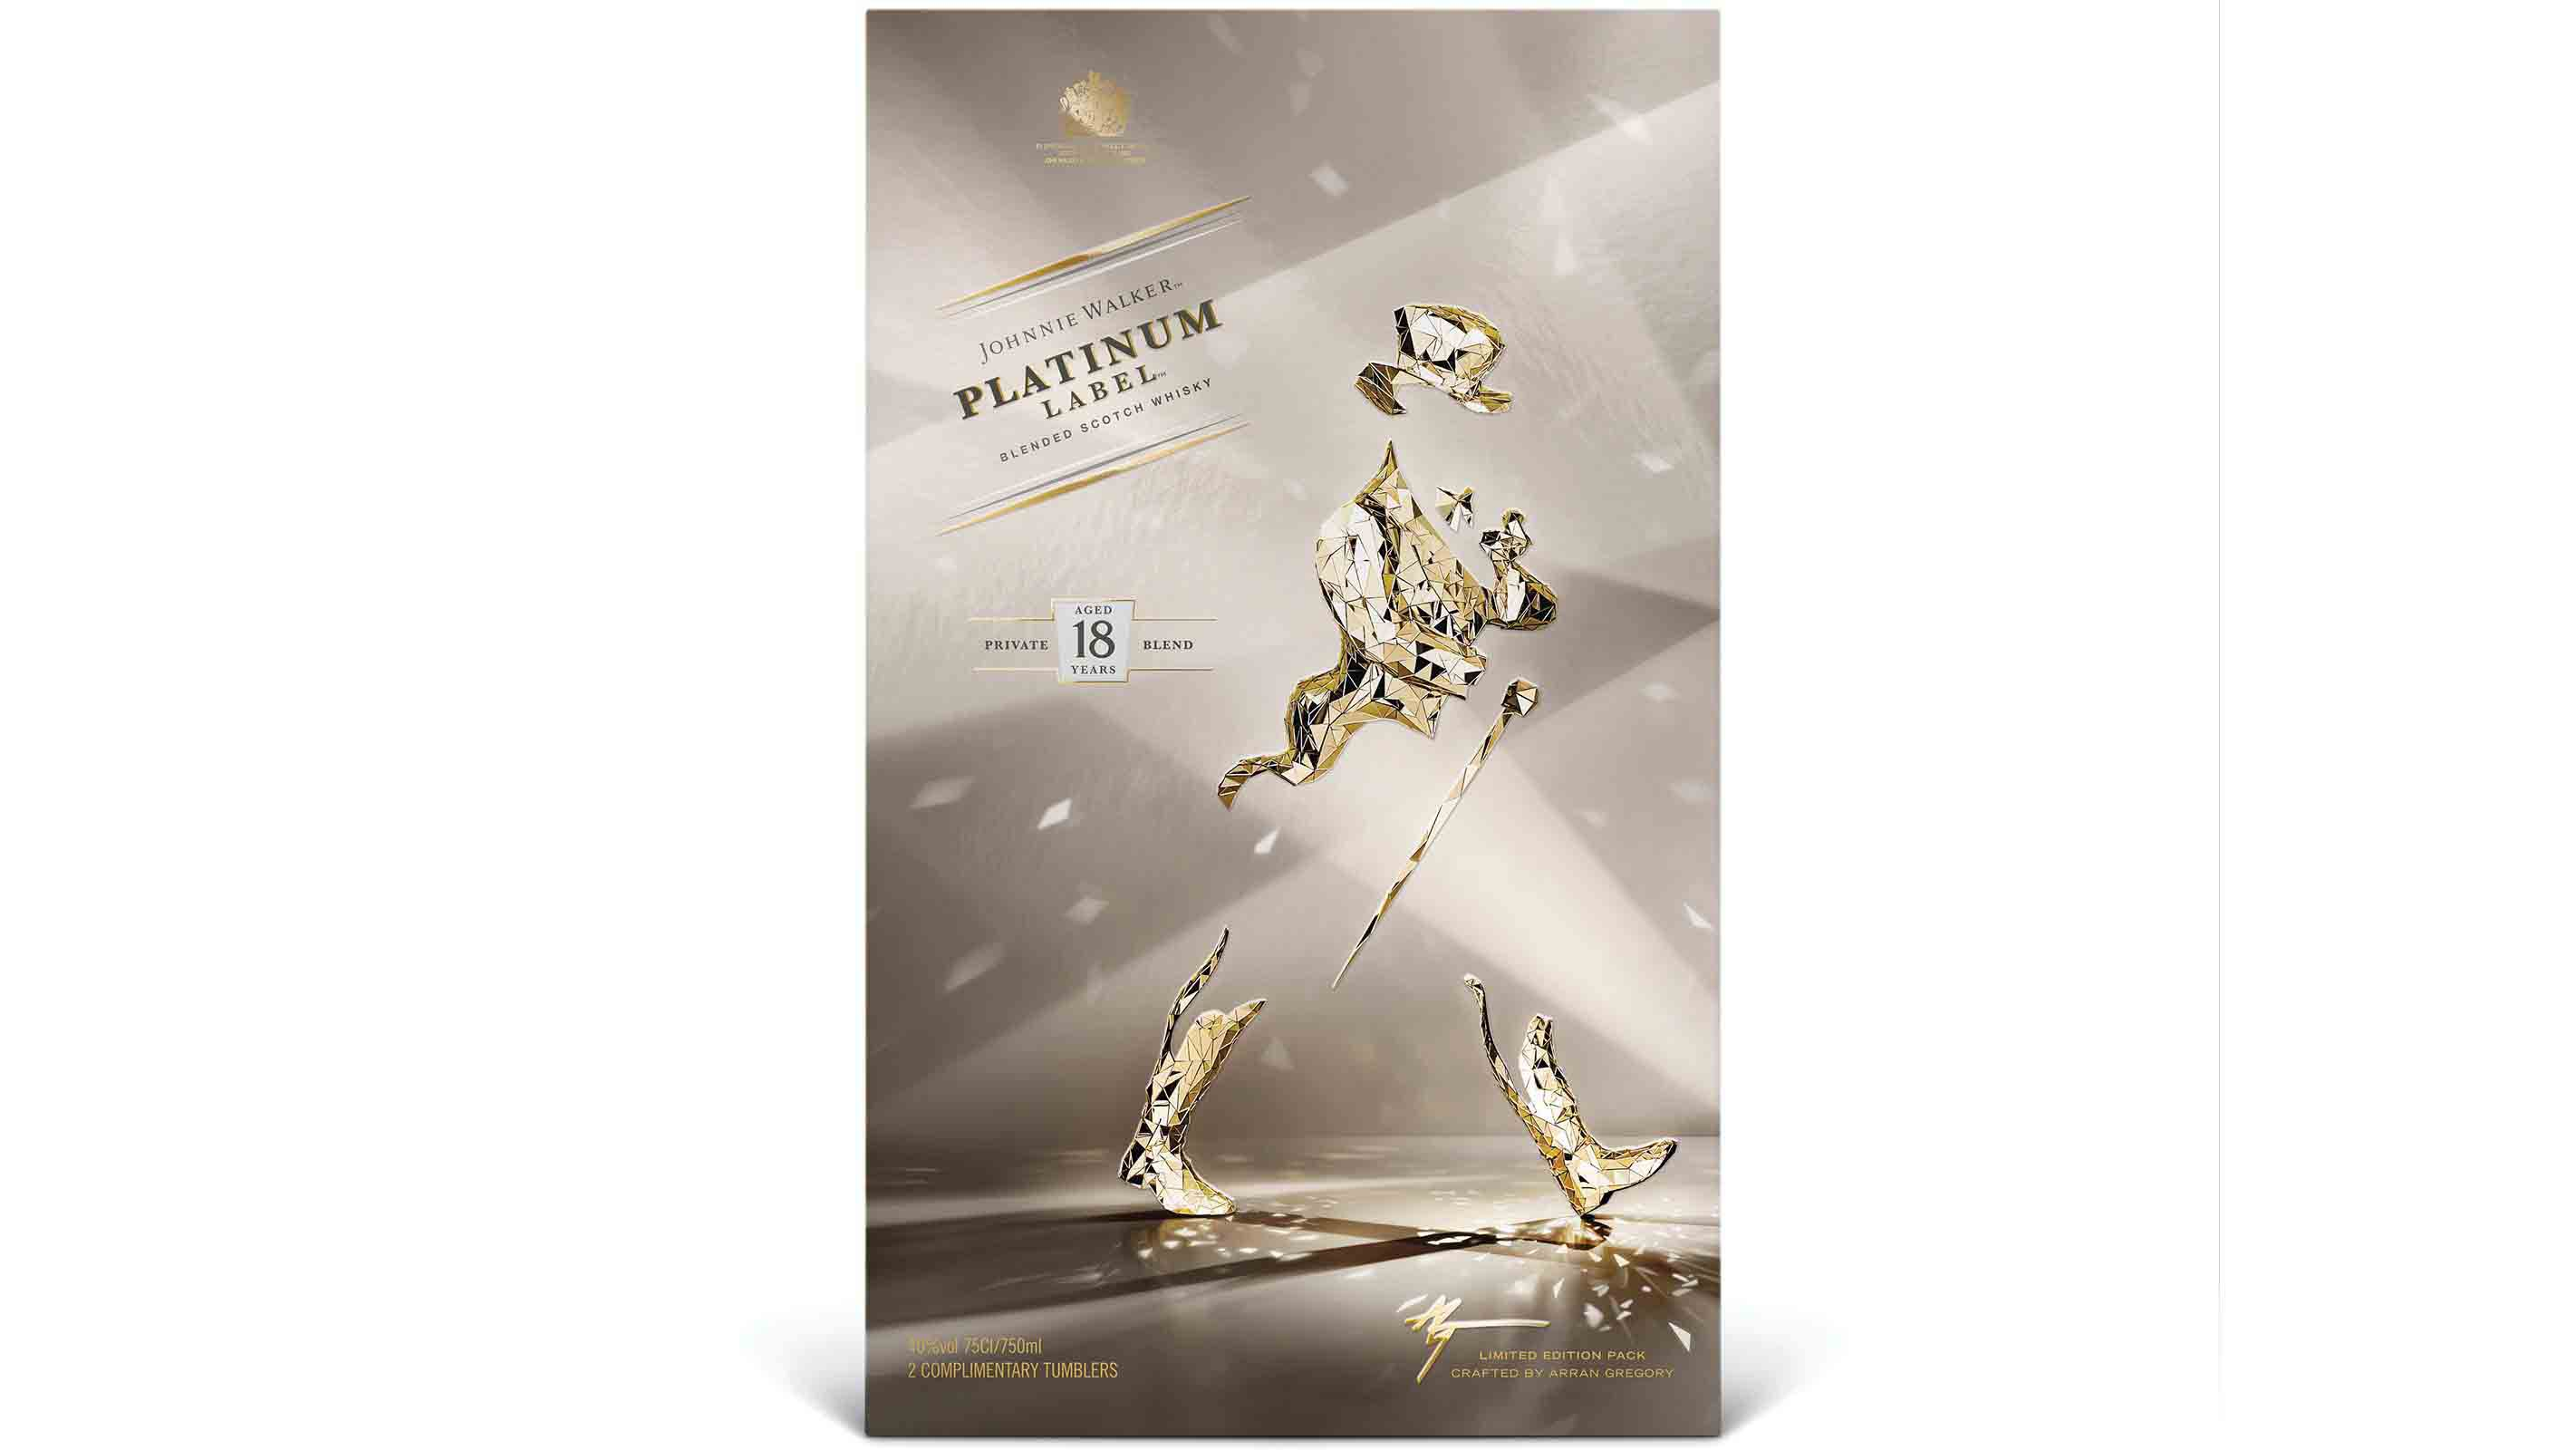 Johnnie Walker Platinum 18 Year Old Limited Edition Pack crafted by Arran Gregory